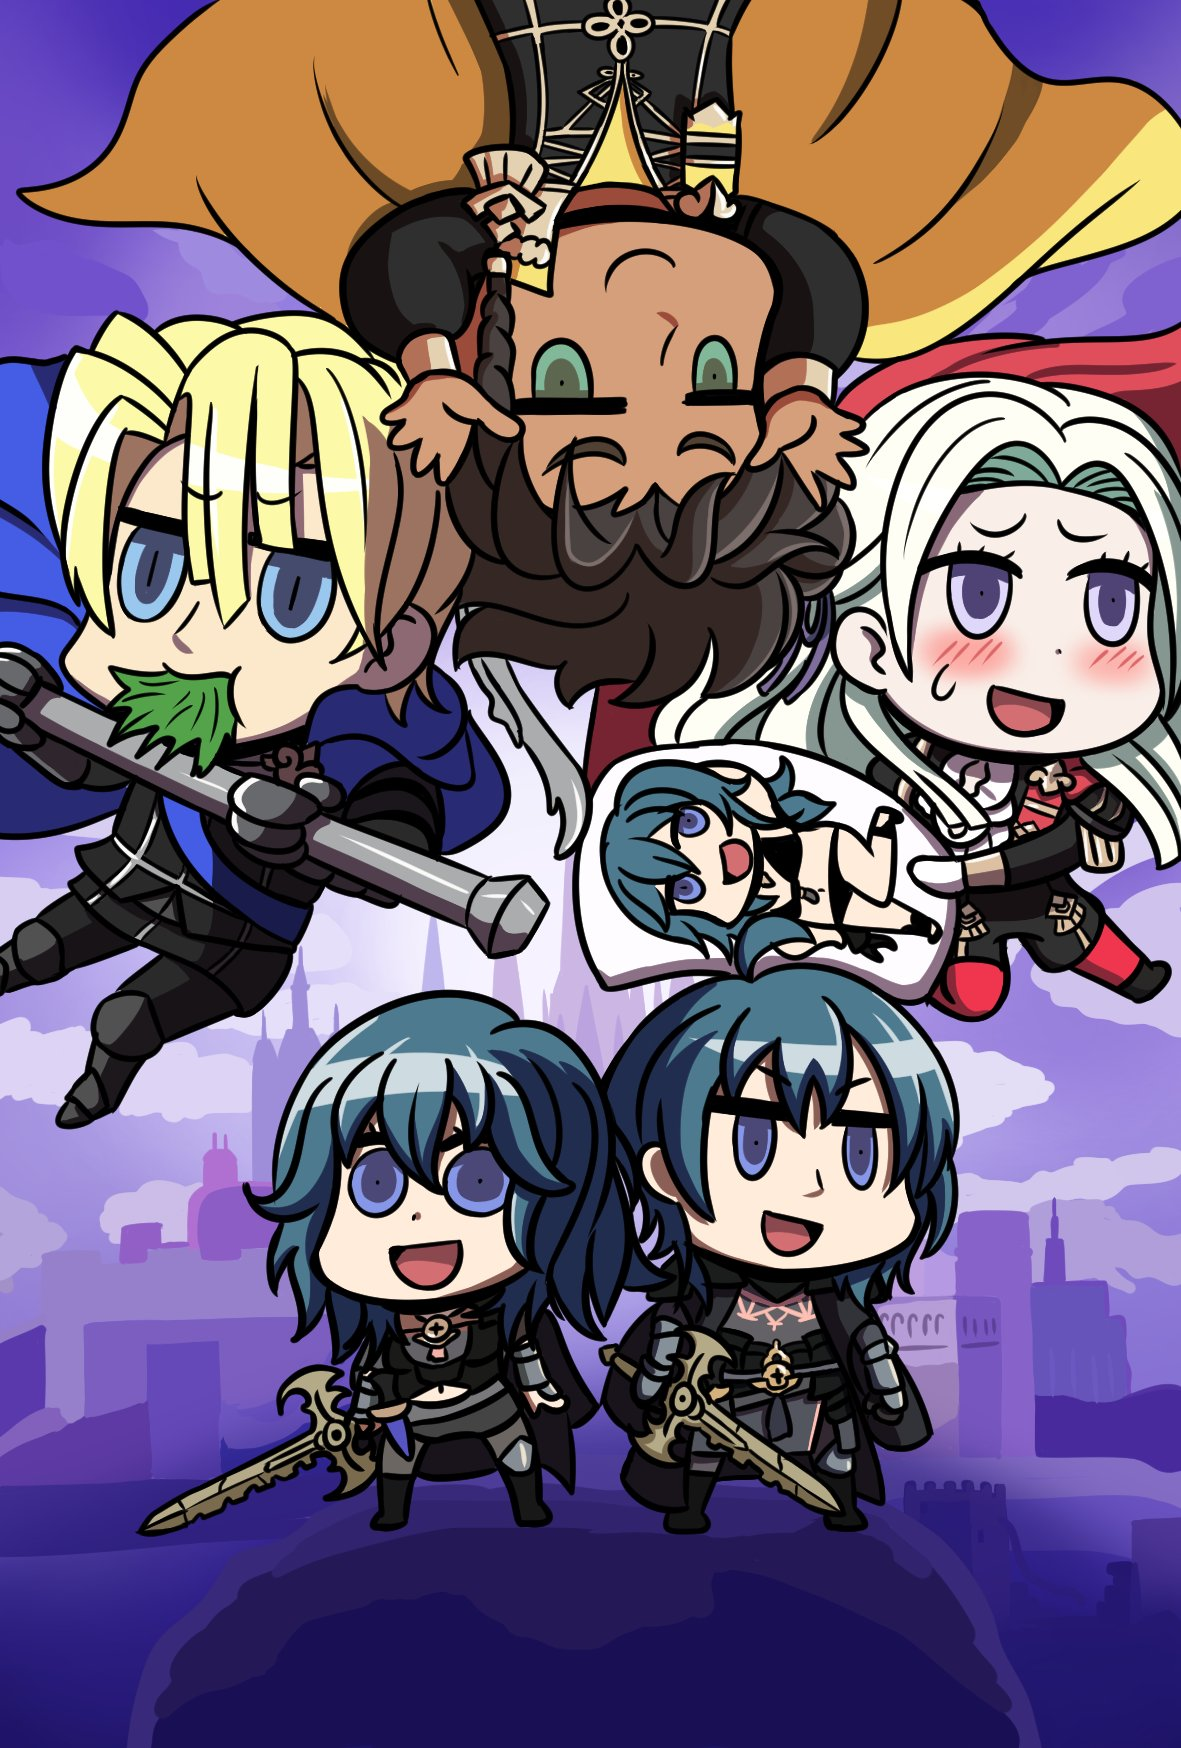 2girls 3boys :d blue_cape blue_eyes box_art byleth_(fire_emblem) byleth_(fire_emblem)_(female) byleth_(fire_emblem)_(male) cape chibi claude_von_riegan dakimakura_(object) dark_skin dark_skinned_male dimitri_alexandre_blaiddyd dual_persona eating edelgard_von_hresvelg fire_emblem fire_emblem:_three_houses green_eyes highres holding holding_sword holding_weapon multiple_boys multiple_girls open_mouth pillow red_cape riyo_(lyomsnpmp)_(style) smile sword sword_of_the_creator upside-down violet_eyes weapon will_(willanator93) yellow_cape